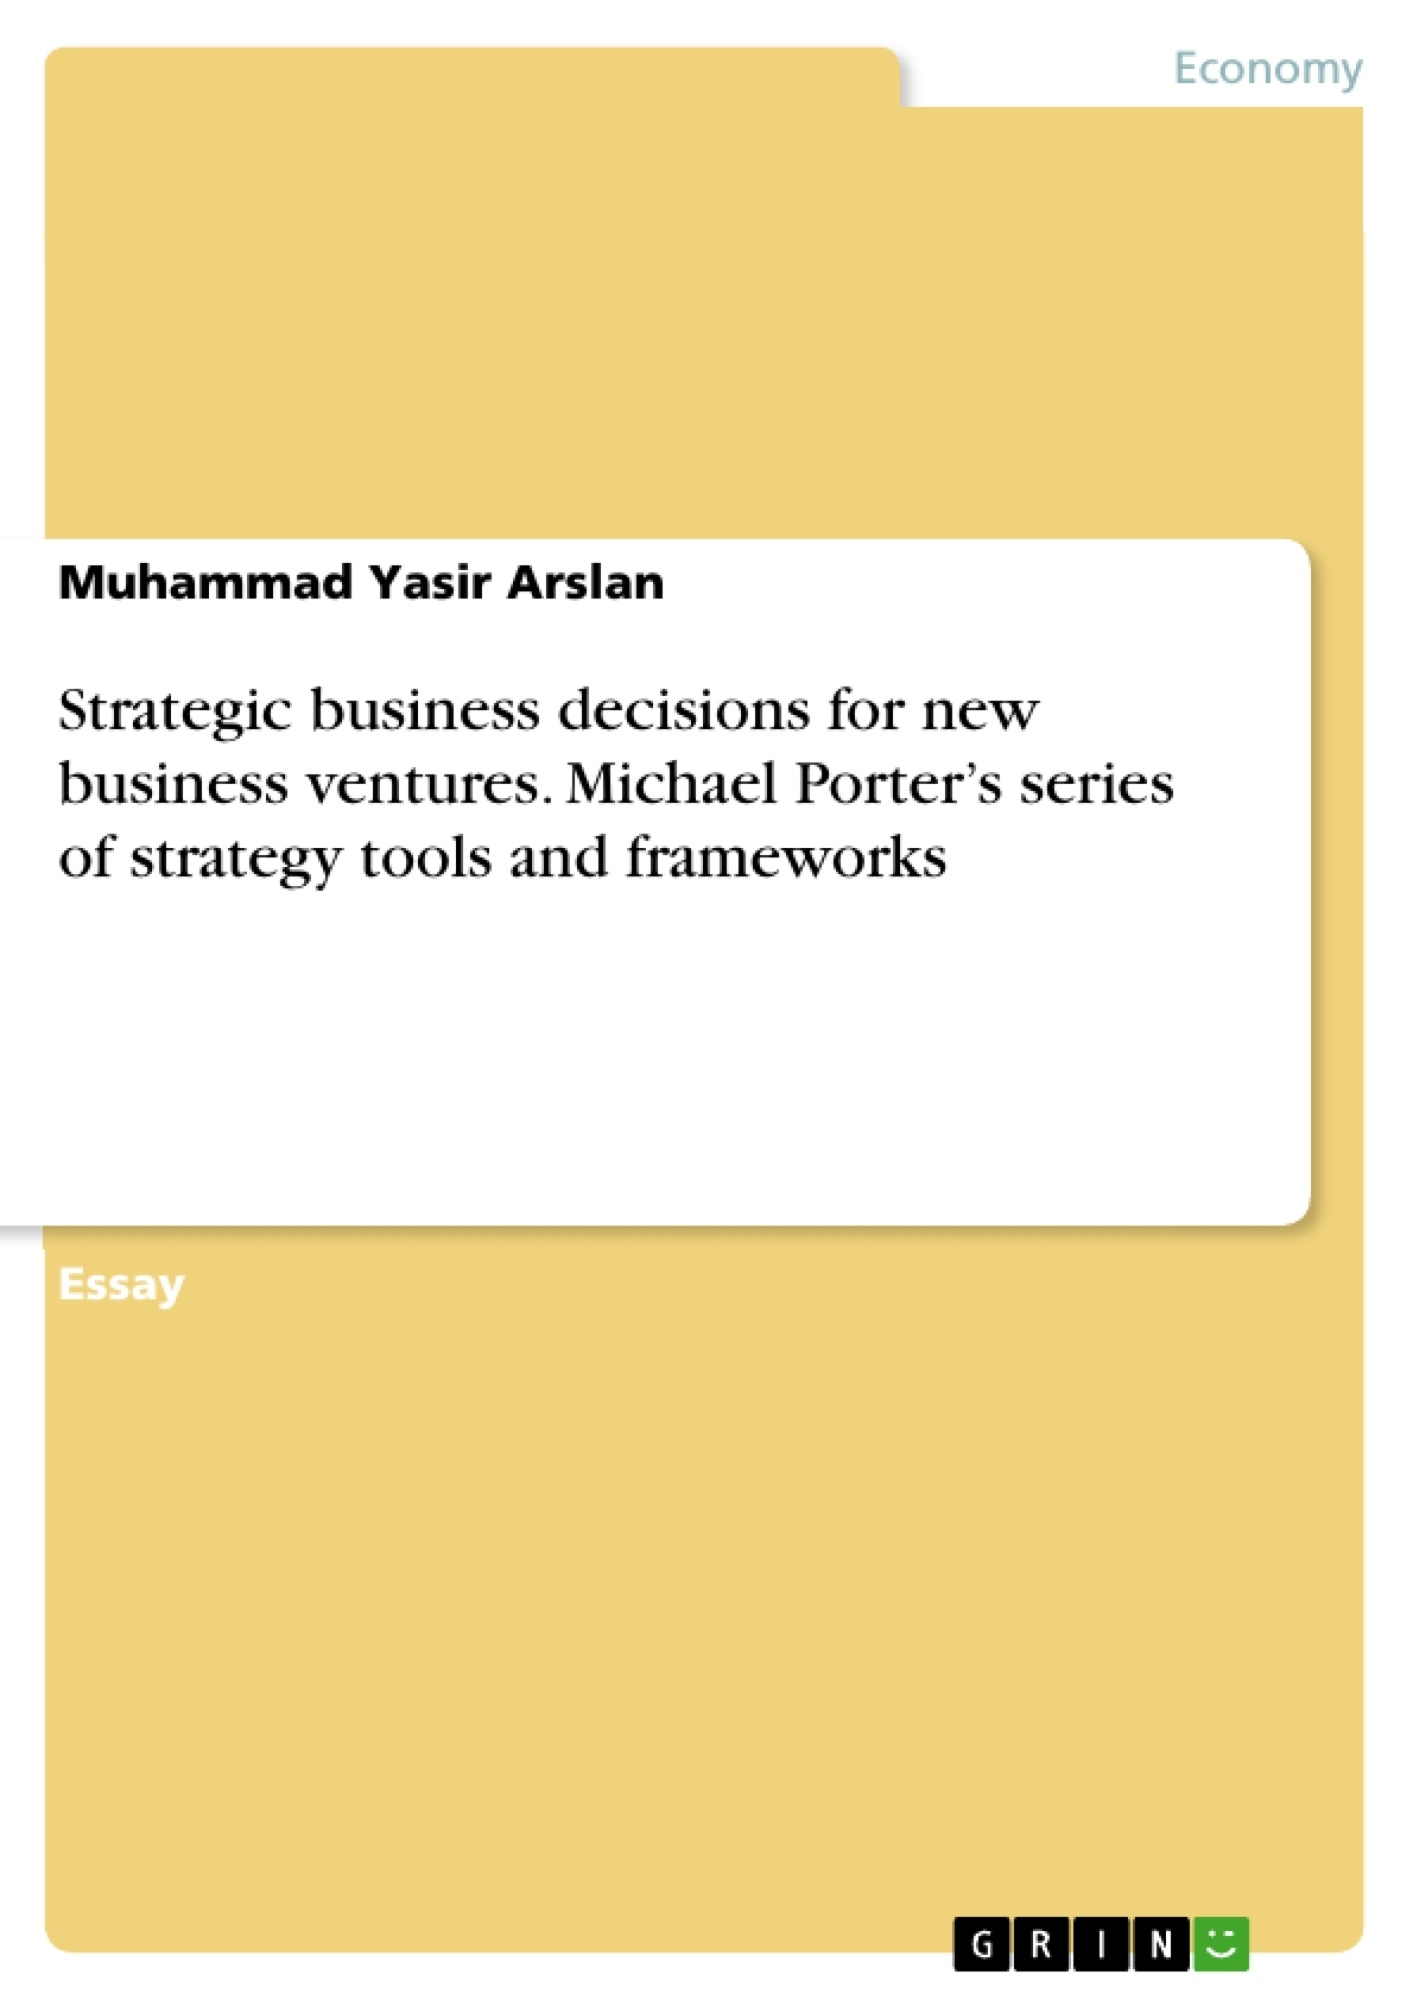 Title: Strategic business decisions for new business ventures. Michael Porter's series of strategy tools and frameworks